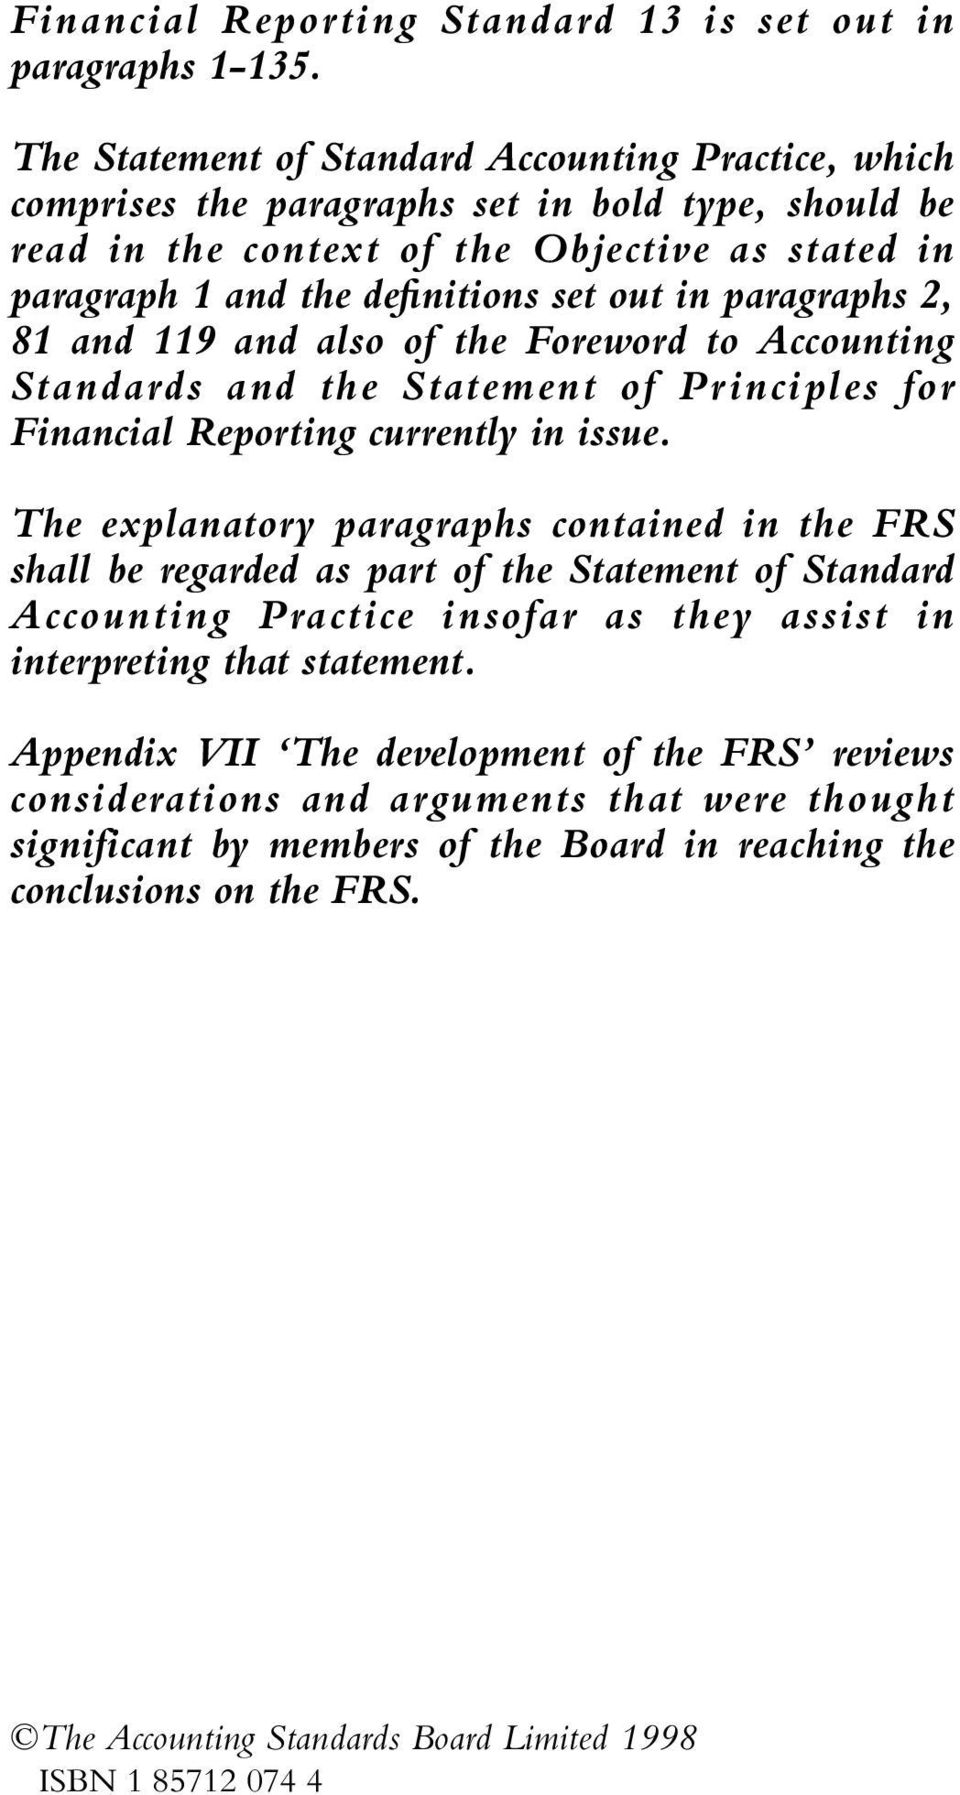 paragraphs 2, 81 and 119 and also of the Foreword to Accounting Standards and the Statement of Principles for Financial Reporting currently in issue.